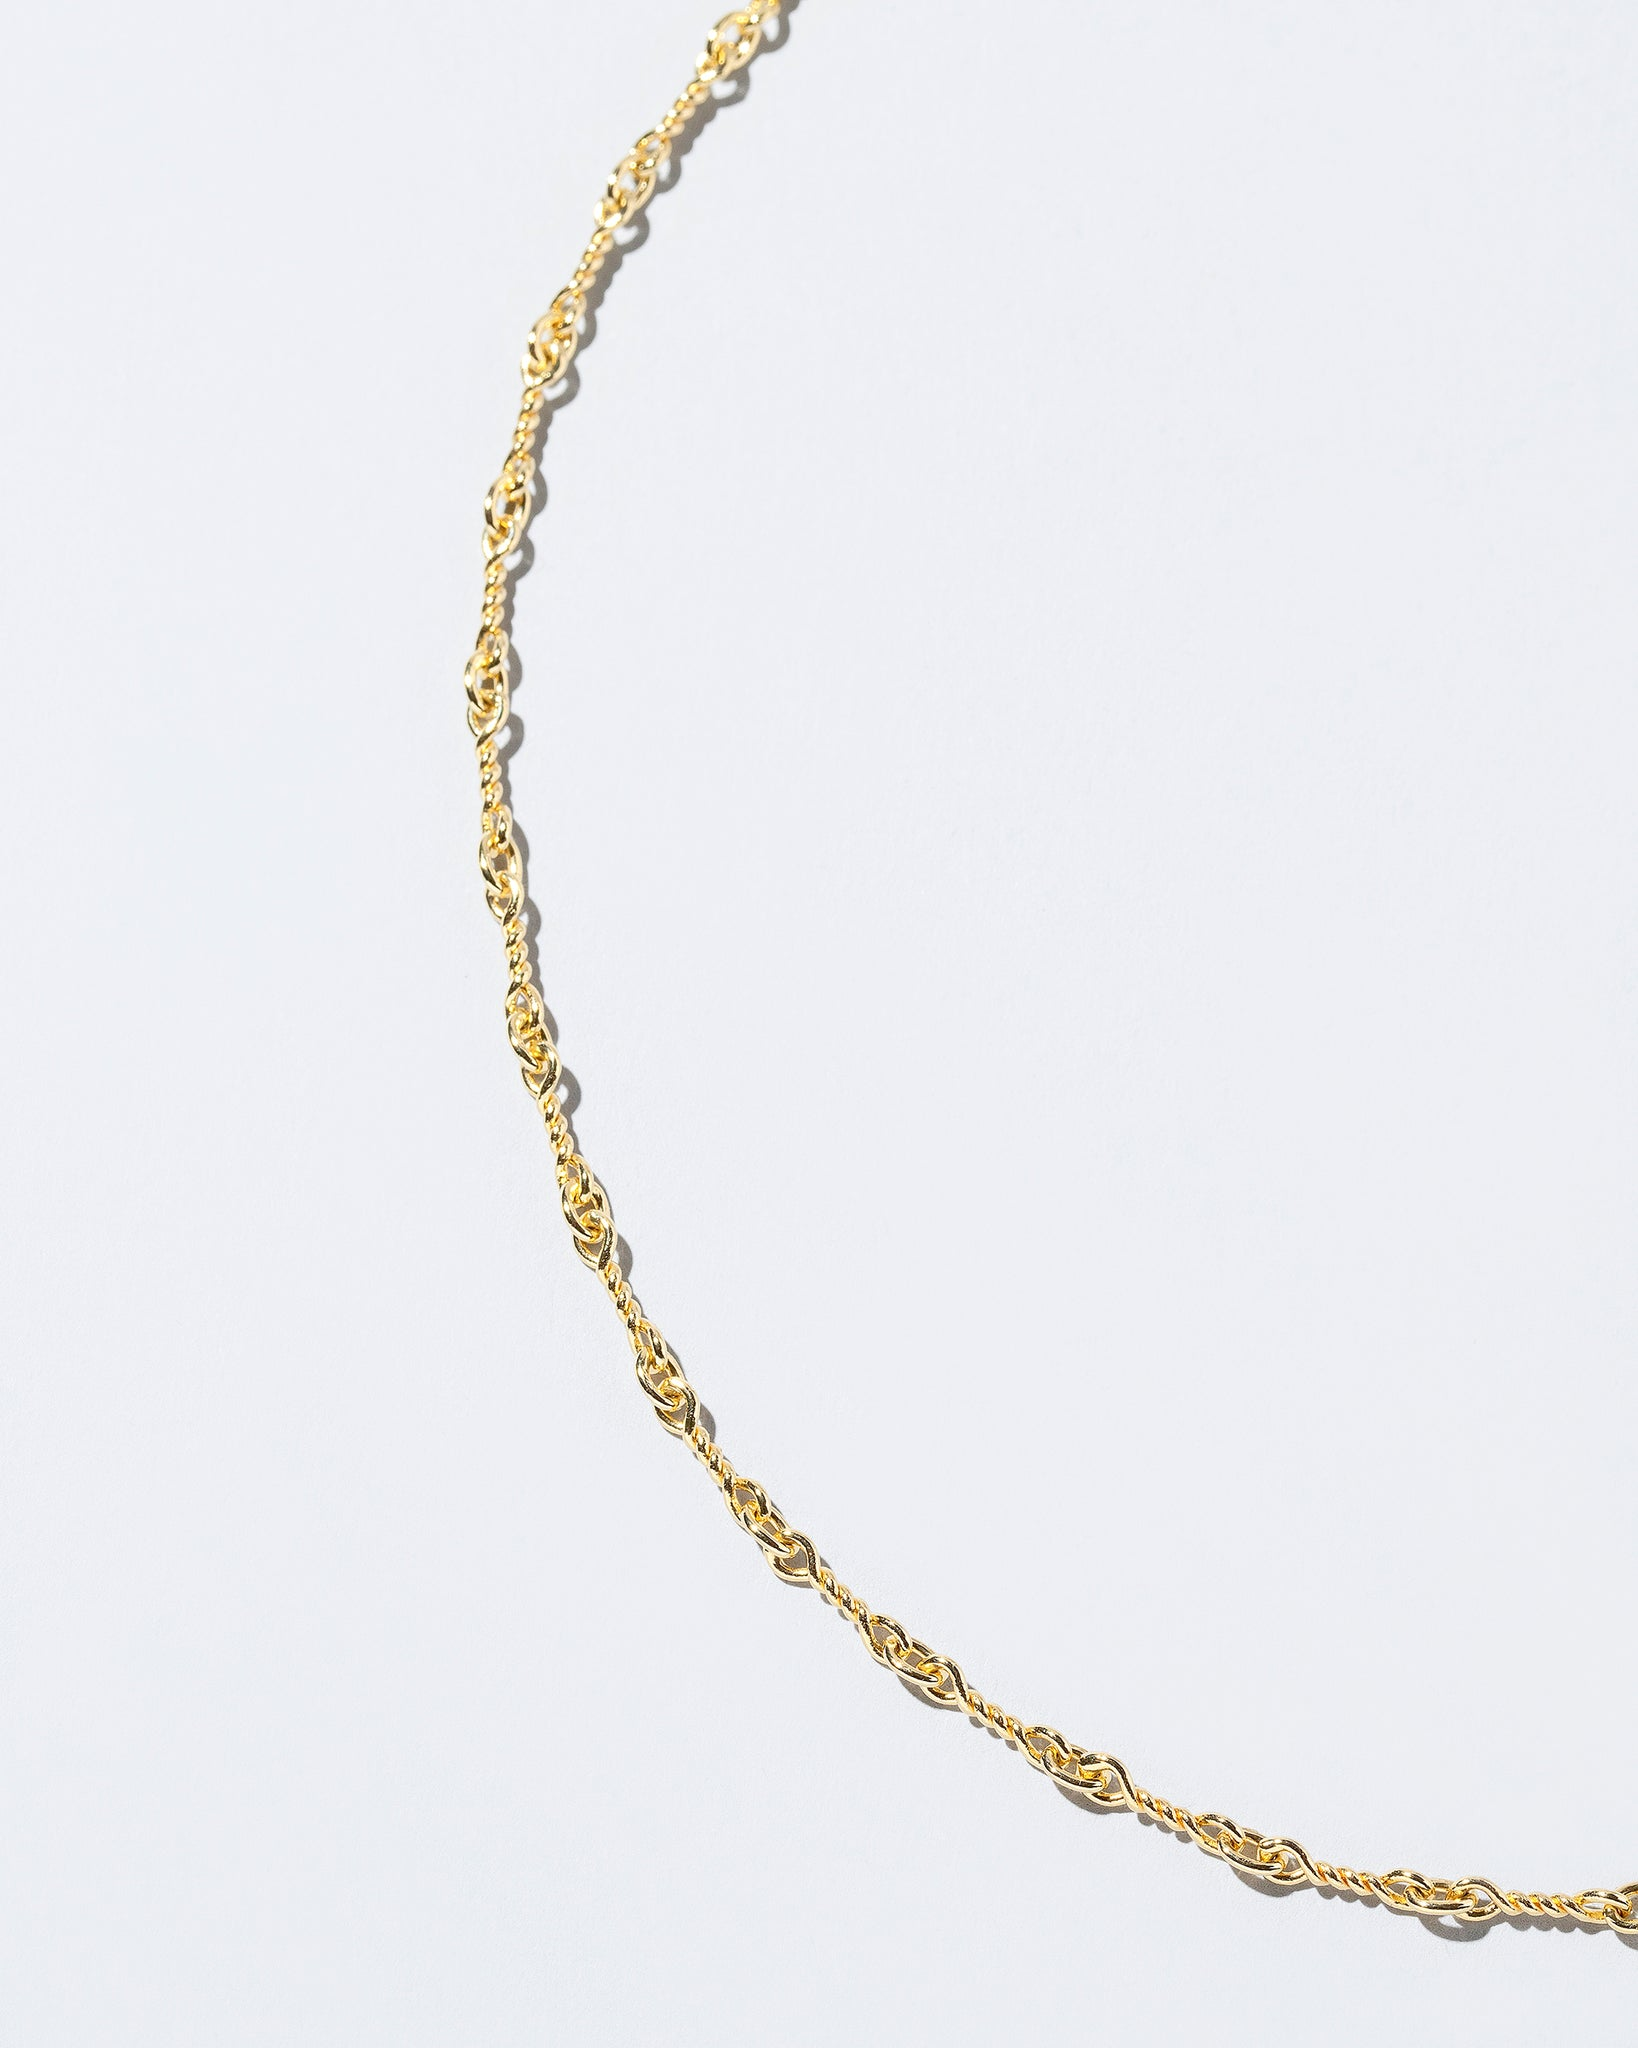 Twisted Chain Necklace on flat surface close up details